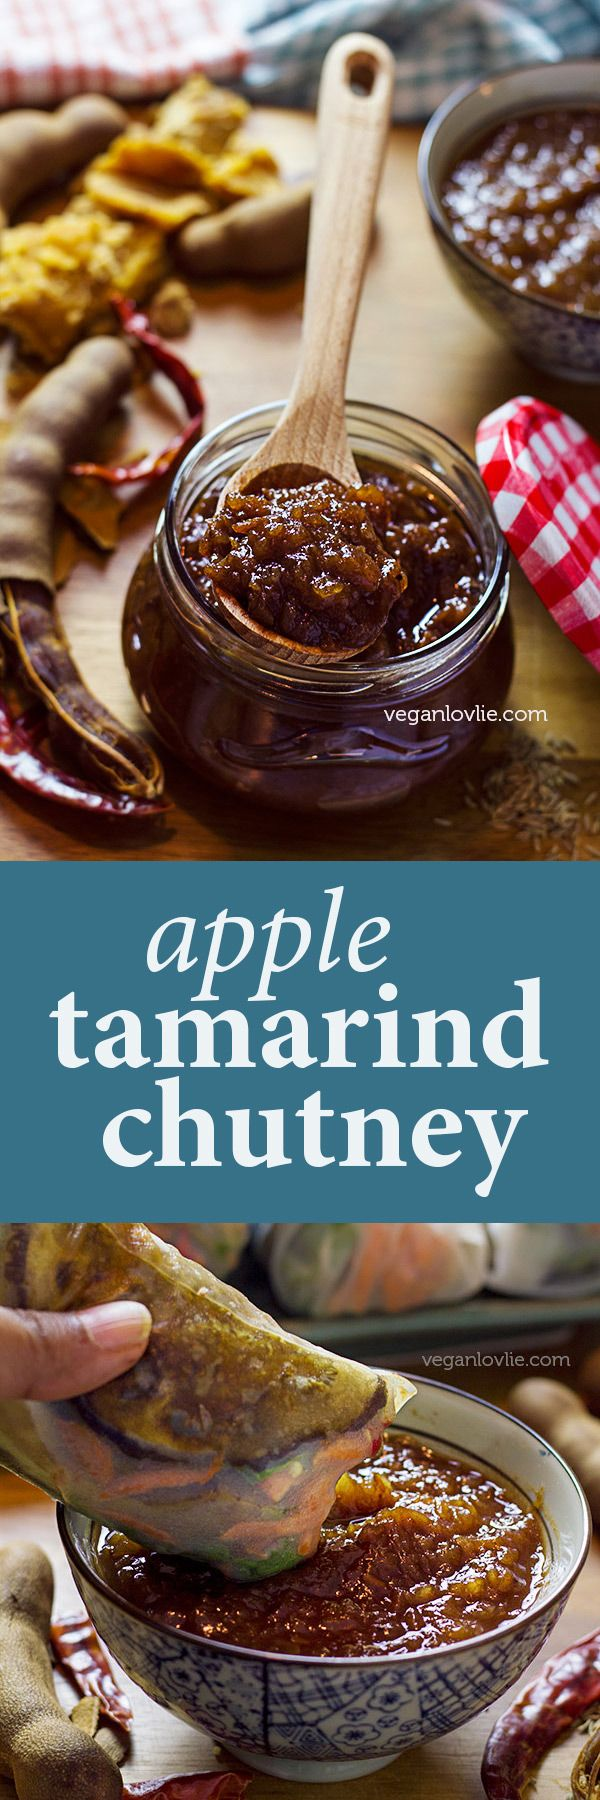 Apple tamarind chutney, sweetened with dates and jaggery. Use as a dipping sauce or alternative to bbq sauce. Watch the video - https://youtu.be/UcCVpgjs3Z0